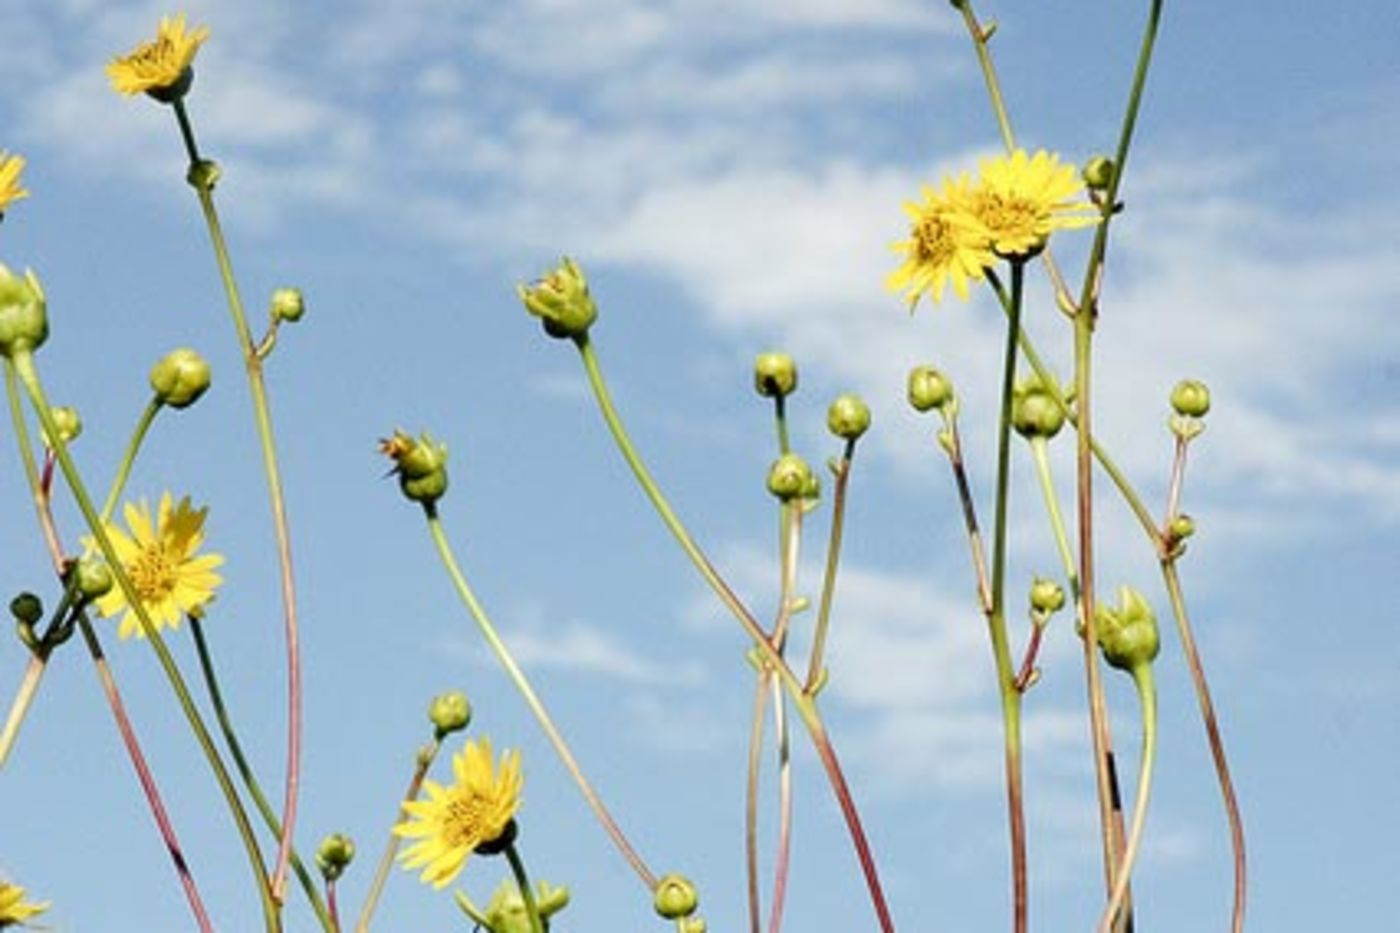 Tall yellow flowers in front of blue sky with clouds